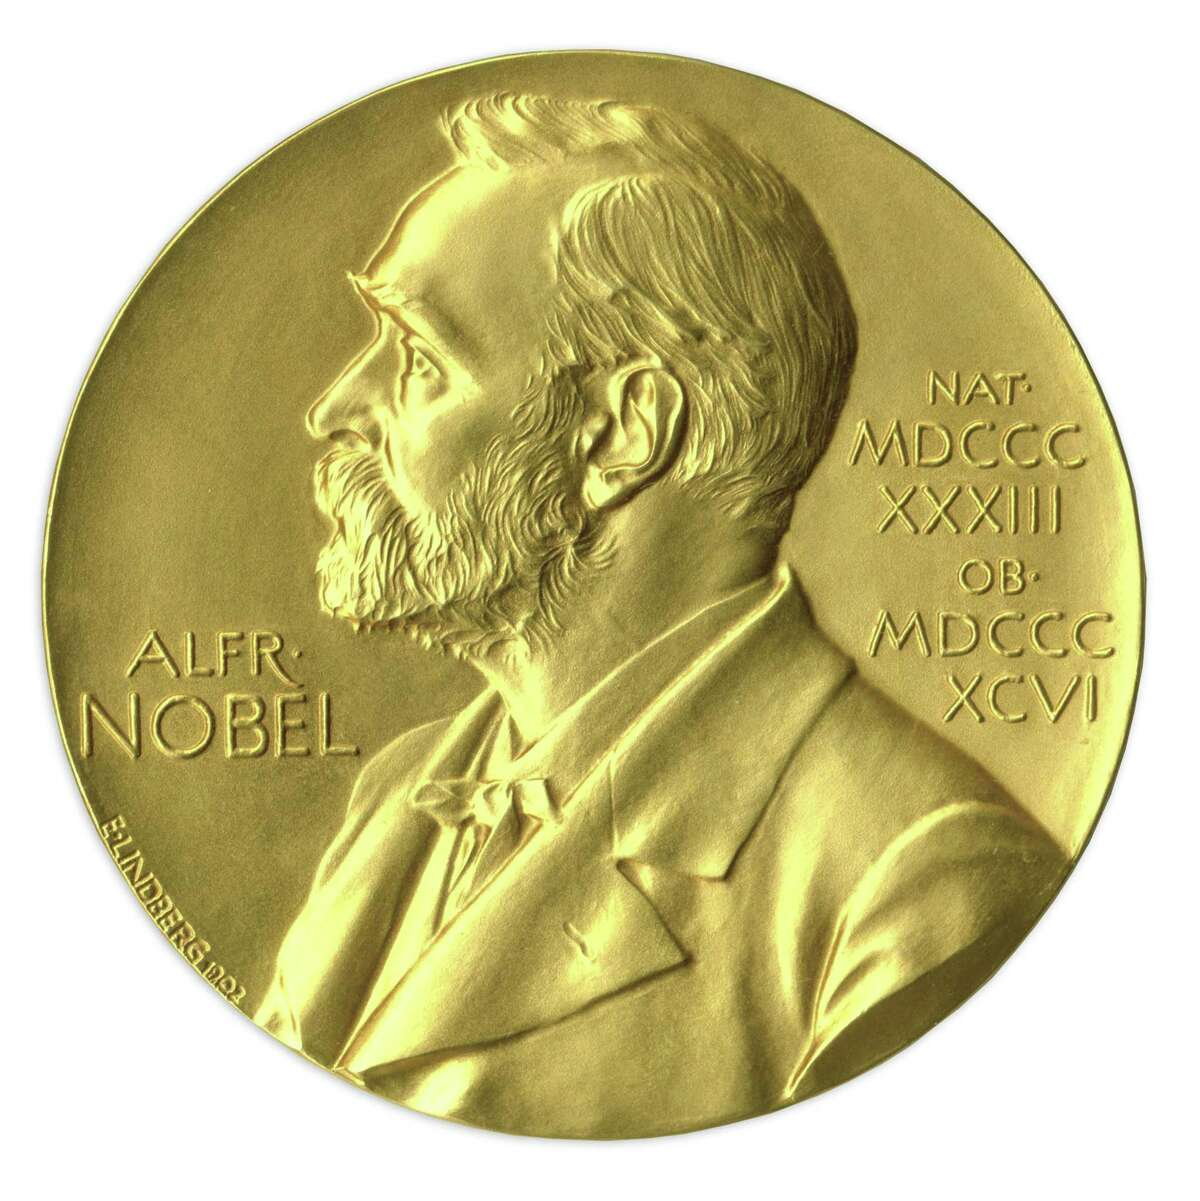 In this undated image provided by Nate D. Sanders Auctions, shows the obverse of the 1988 Nobel Prize in Physics awarded to Dr. Leon Lederman. The award put up for auction by the retired experimental physicist has sold for $765,002 USD. The online auction went into overtime Thursday, May 28, 2015, until a final bid went unchallenged for half an hour. Nate D. Sanders Auctions spokesman Sam Heller says the final amount is the fourth-highest ever paid among the 10 Nobel Prizes that have been sold at auction. The 92-year-old has said he decided to sell the prize because it has just been sitting on a shelf. (Amanda Hart, Nate D. Sanders Auctions via AP)